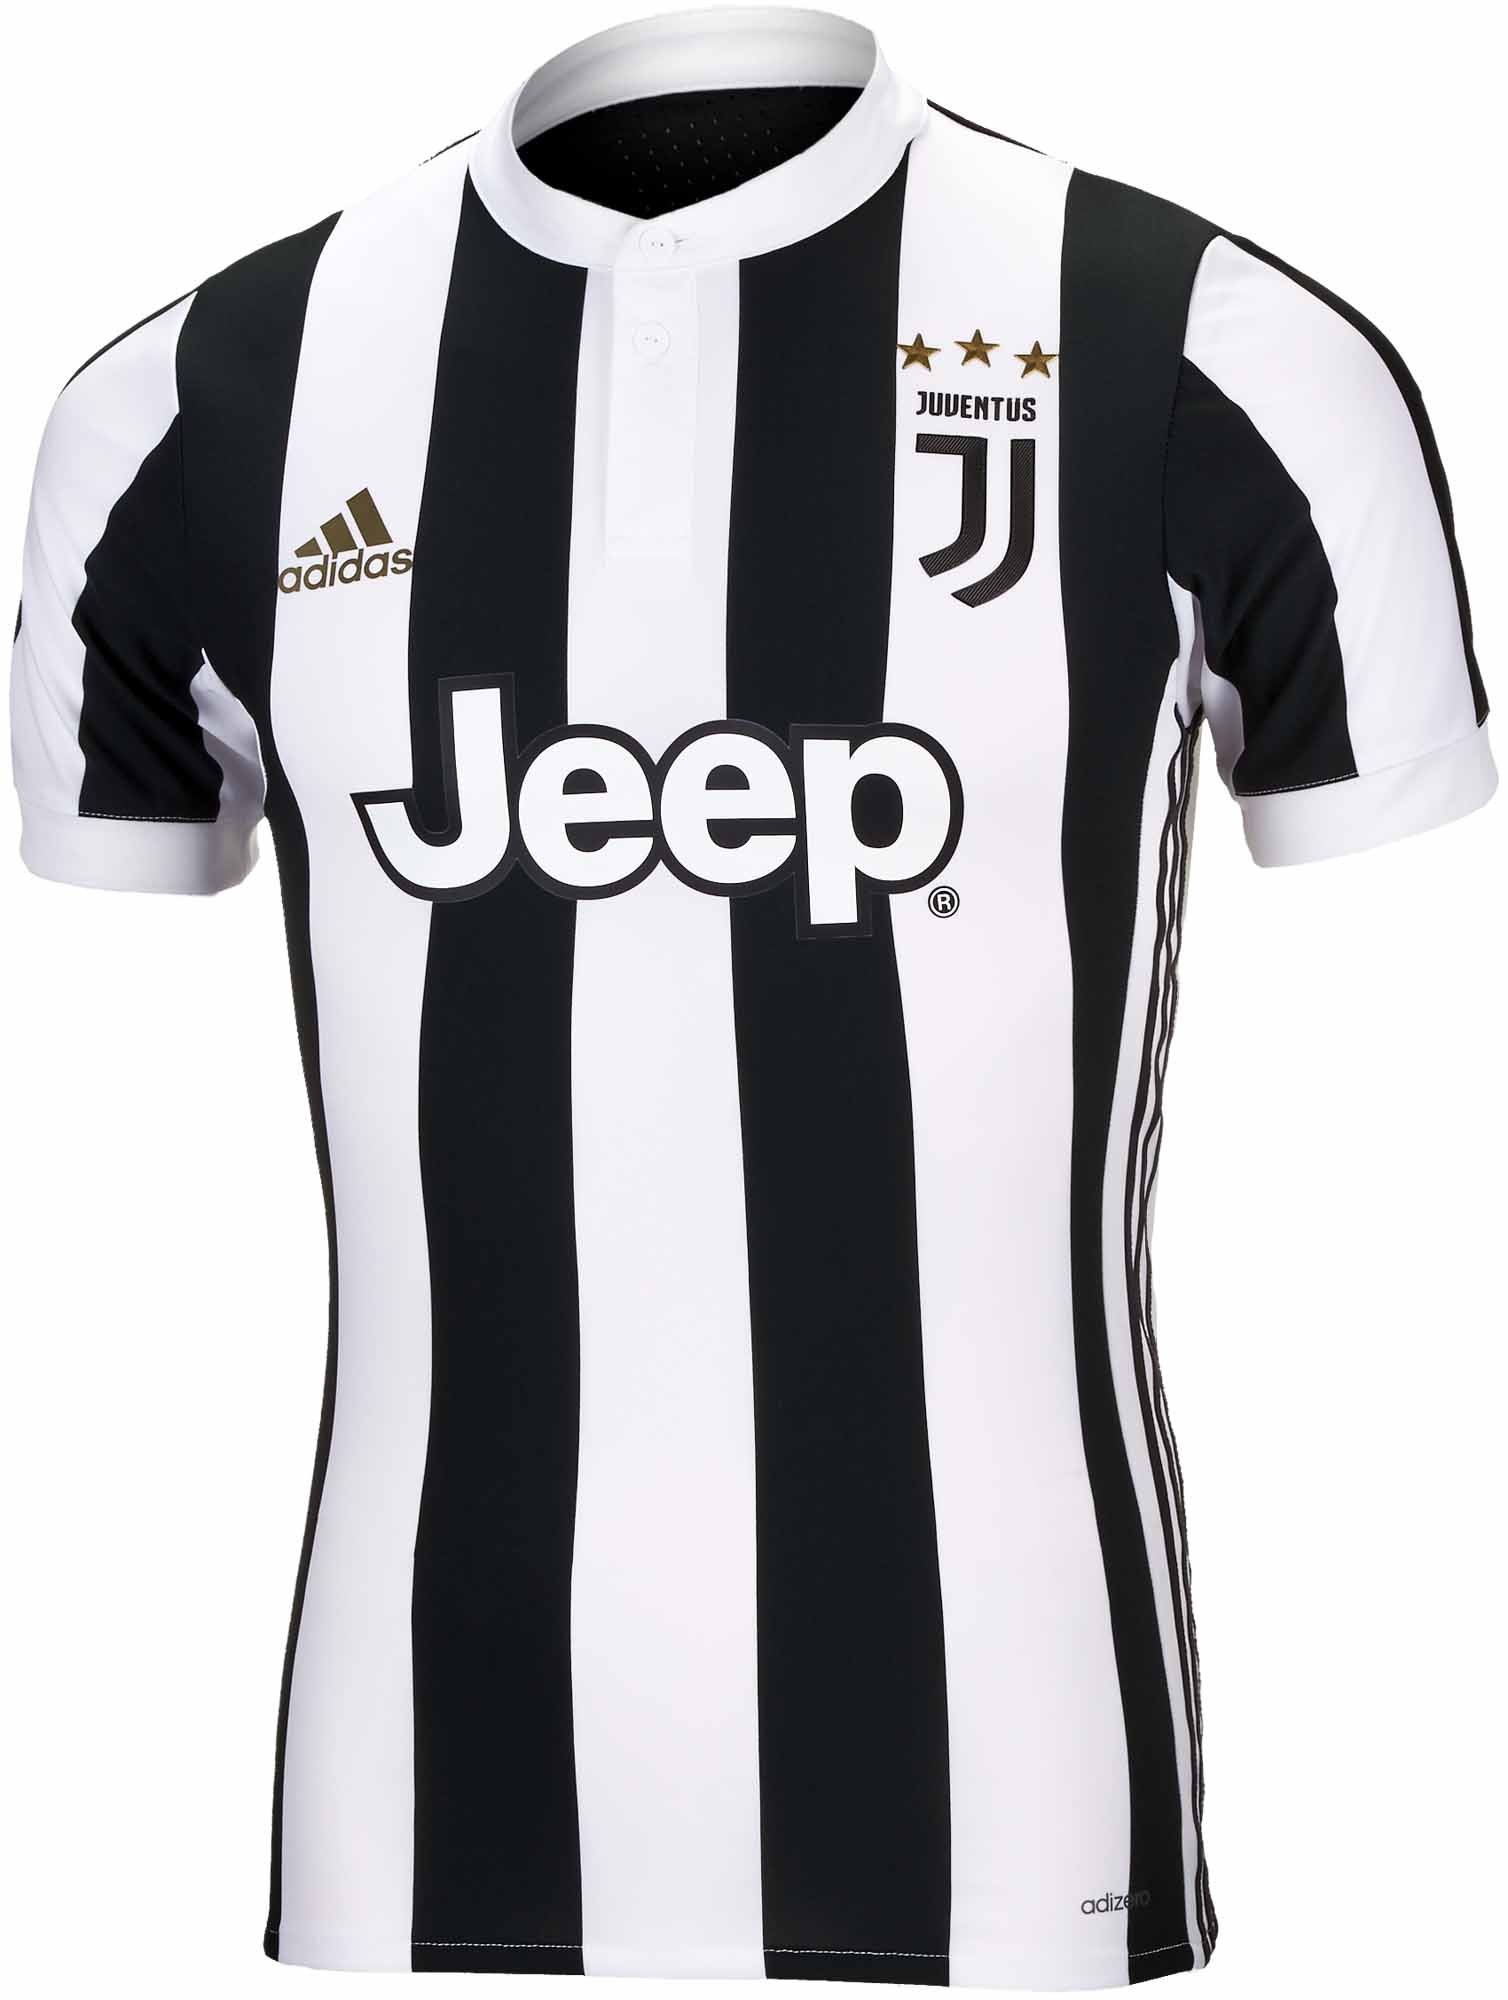 how to tell real authentic jersey